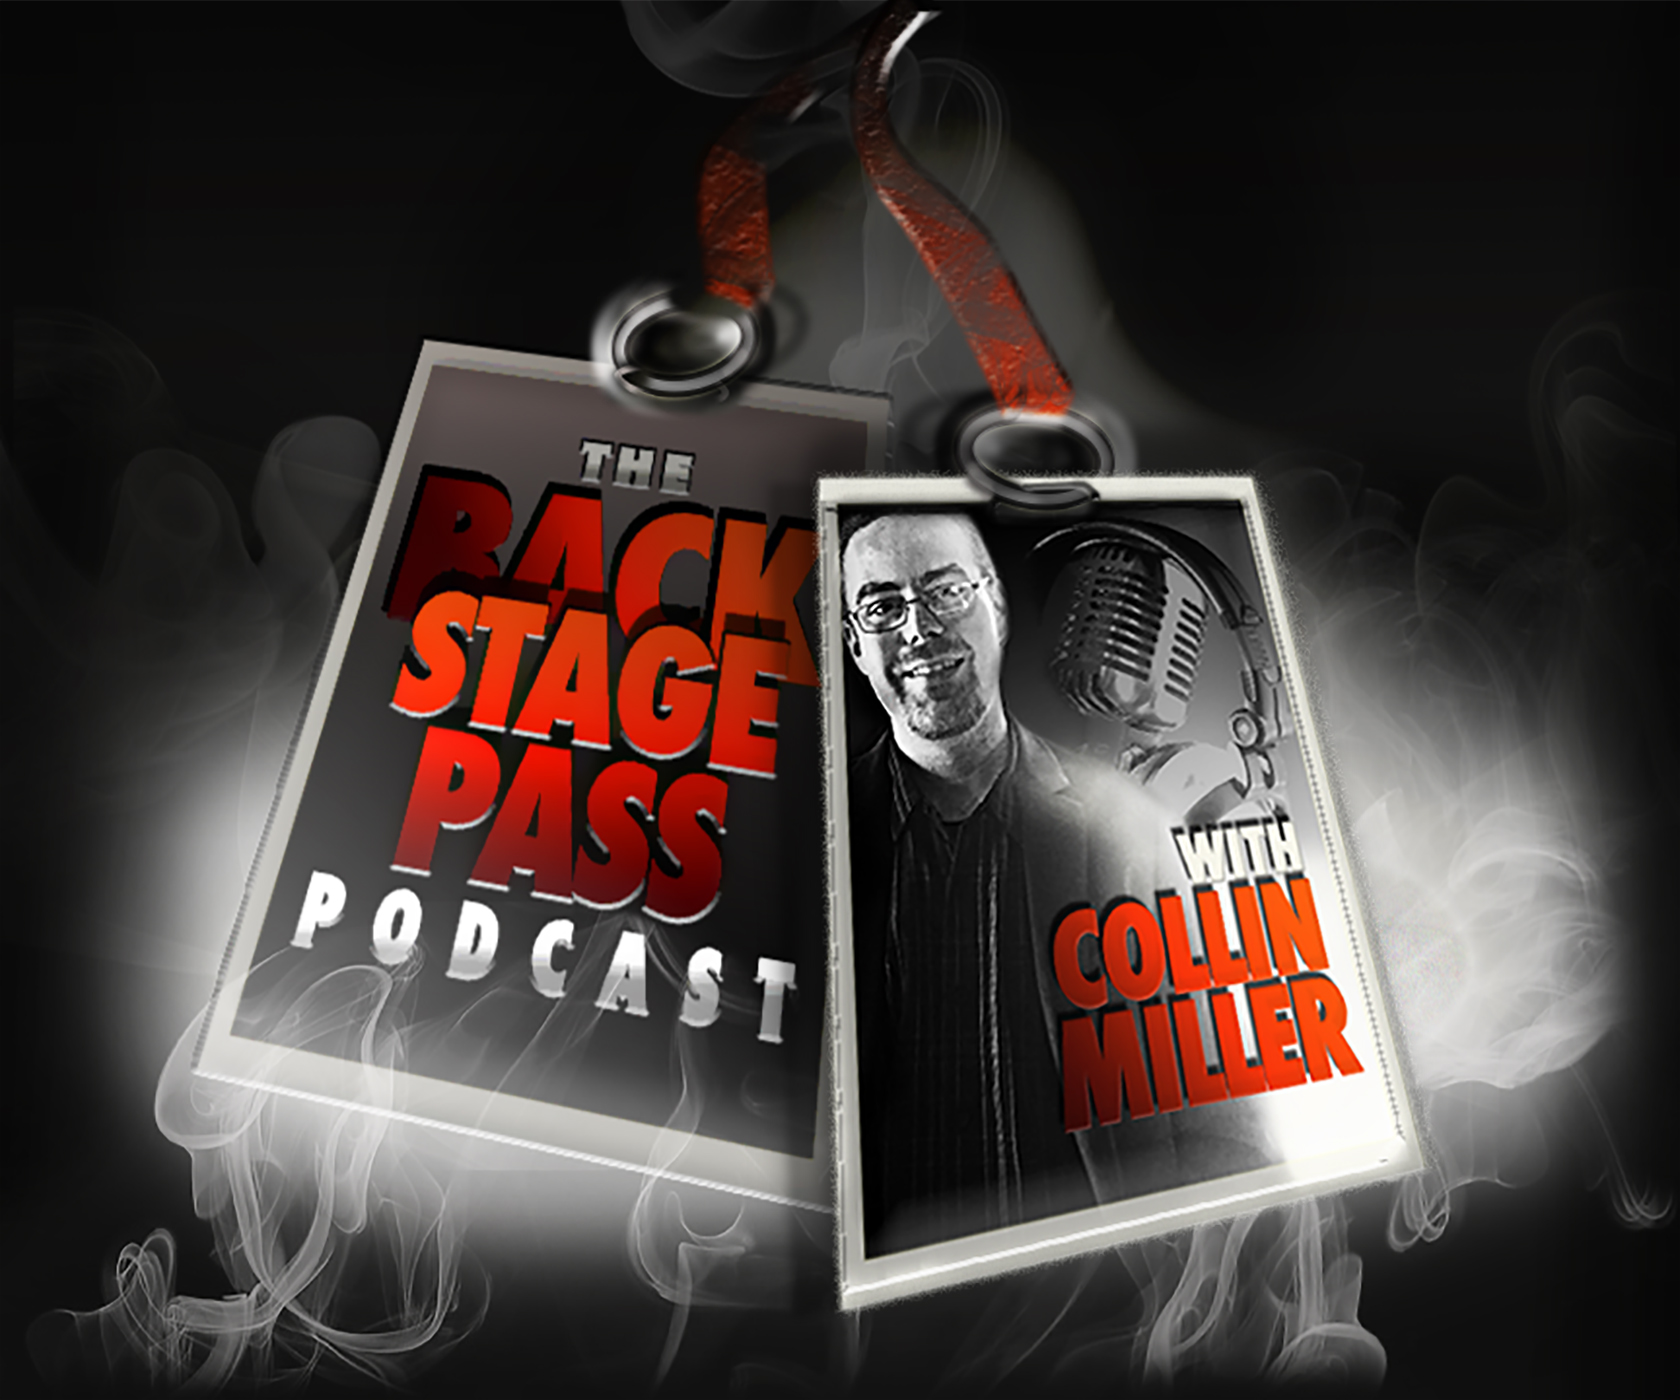 Backstage Pass with Collin Miller